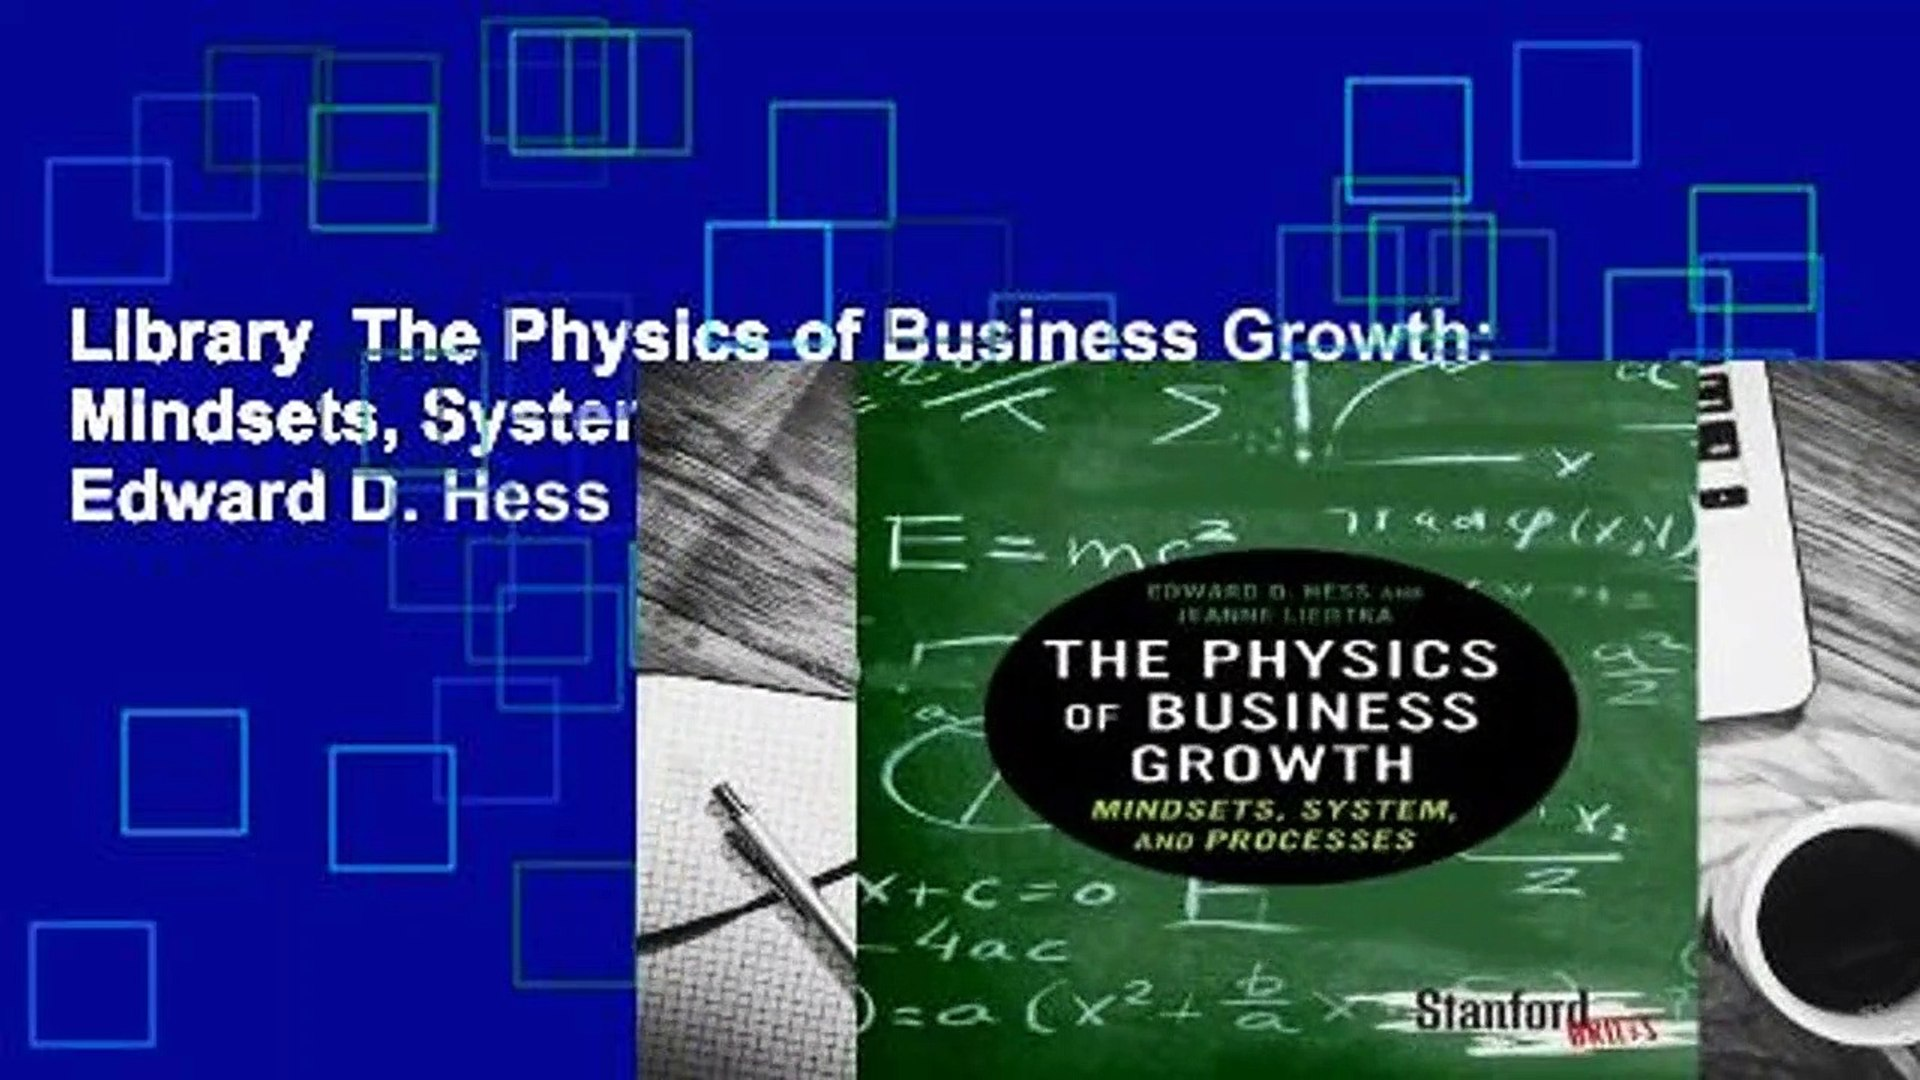 The Physics of Business Growth: Mindsets, System, and Processes (Stanford Briefs)